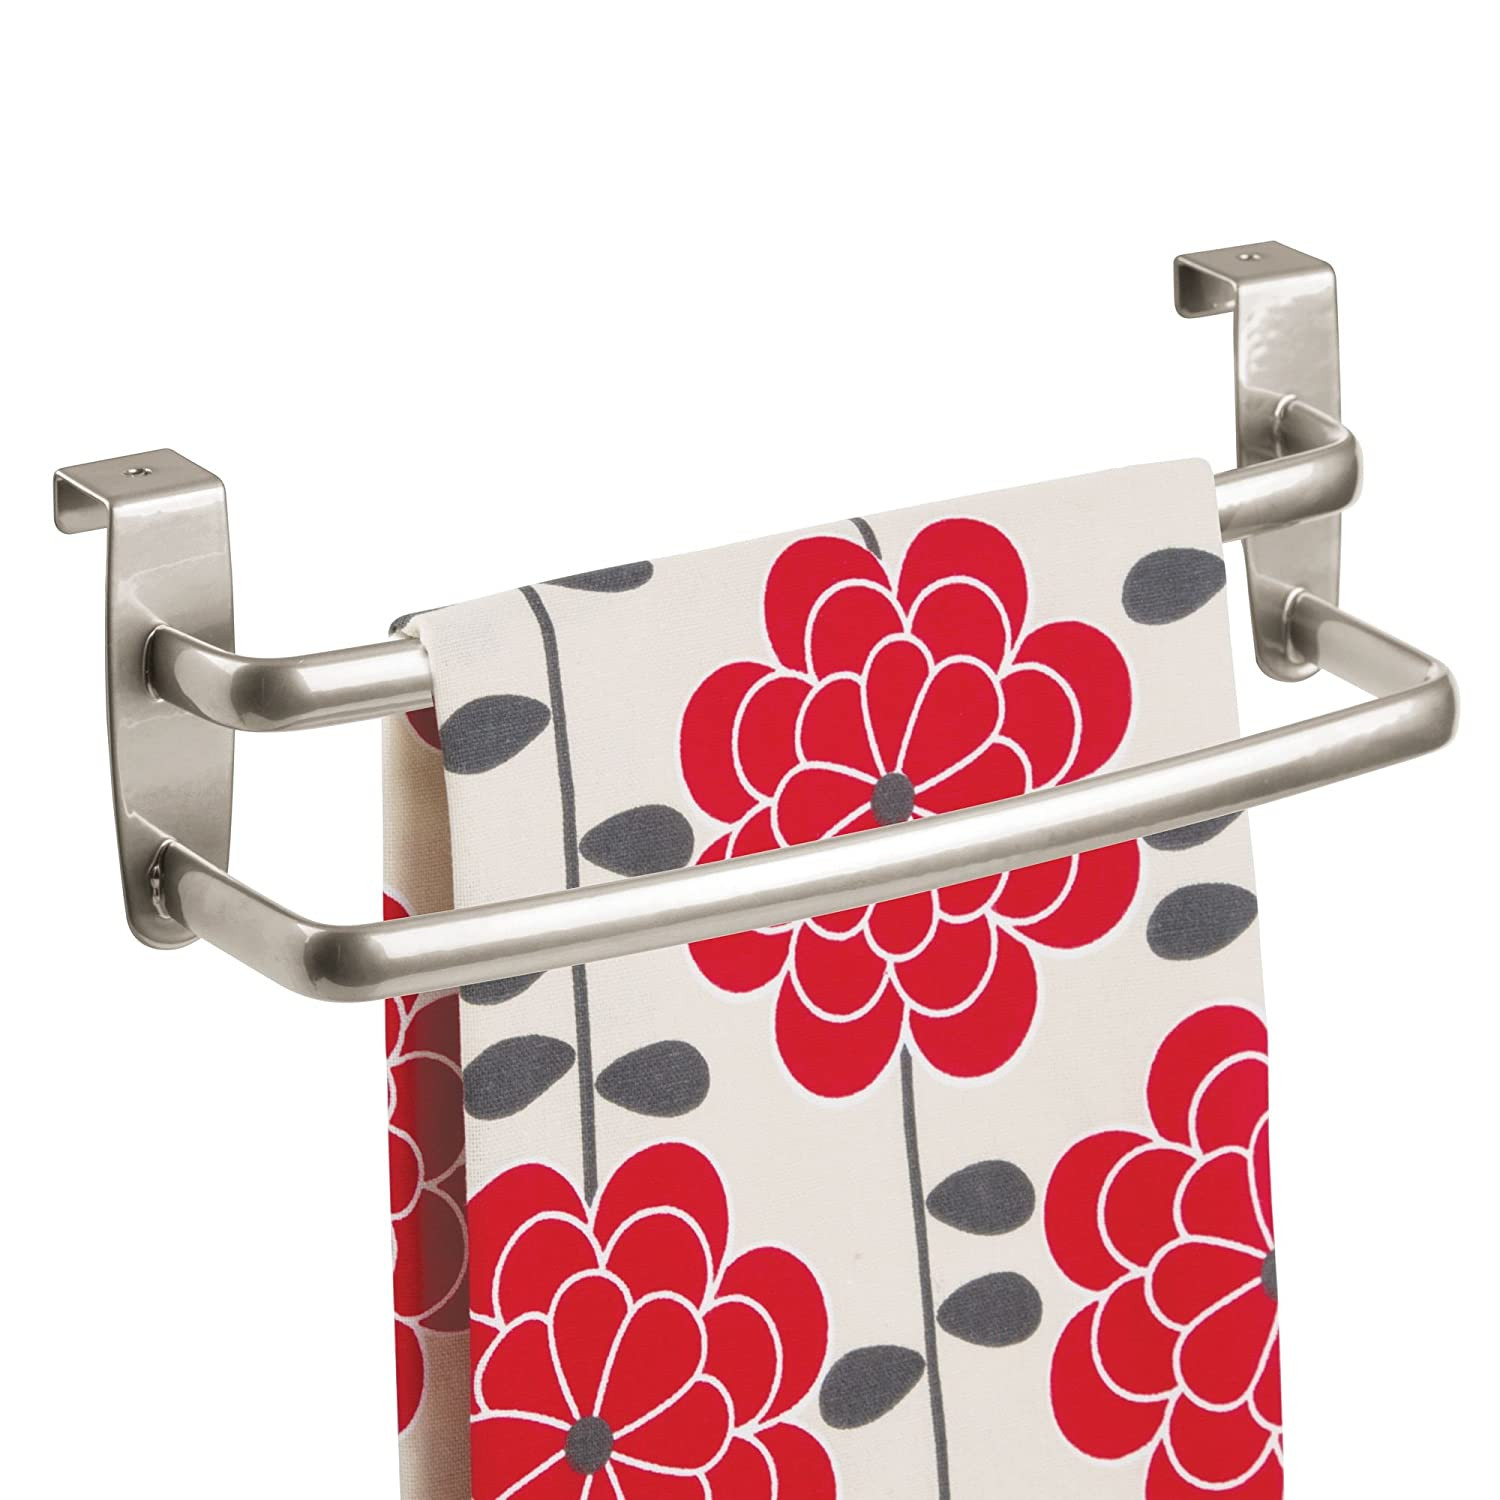 """mDesign Modern Kitchen Over Cabinet Strong Steel Double Towel Bar Rack - Hang on Inside or Outside of Doors - Storage and Organization for Hand, Dish, Tea Towels - 9.75"""" Wide - Brushed Nickel"""